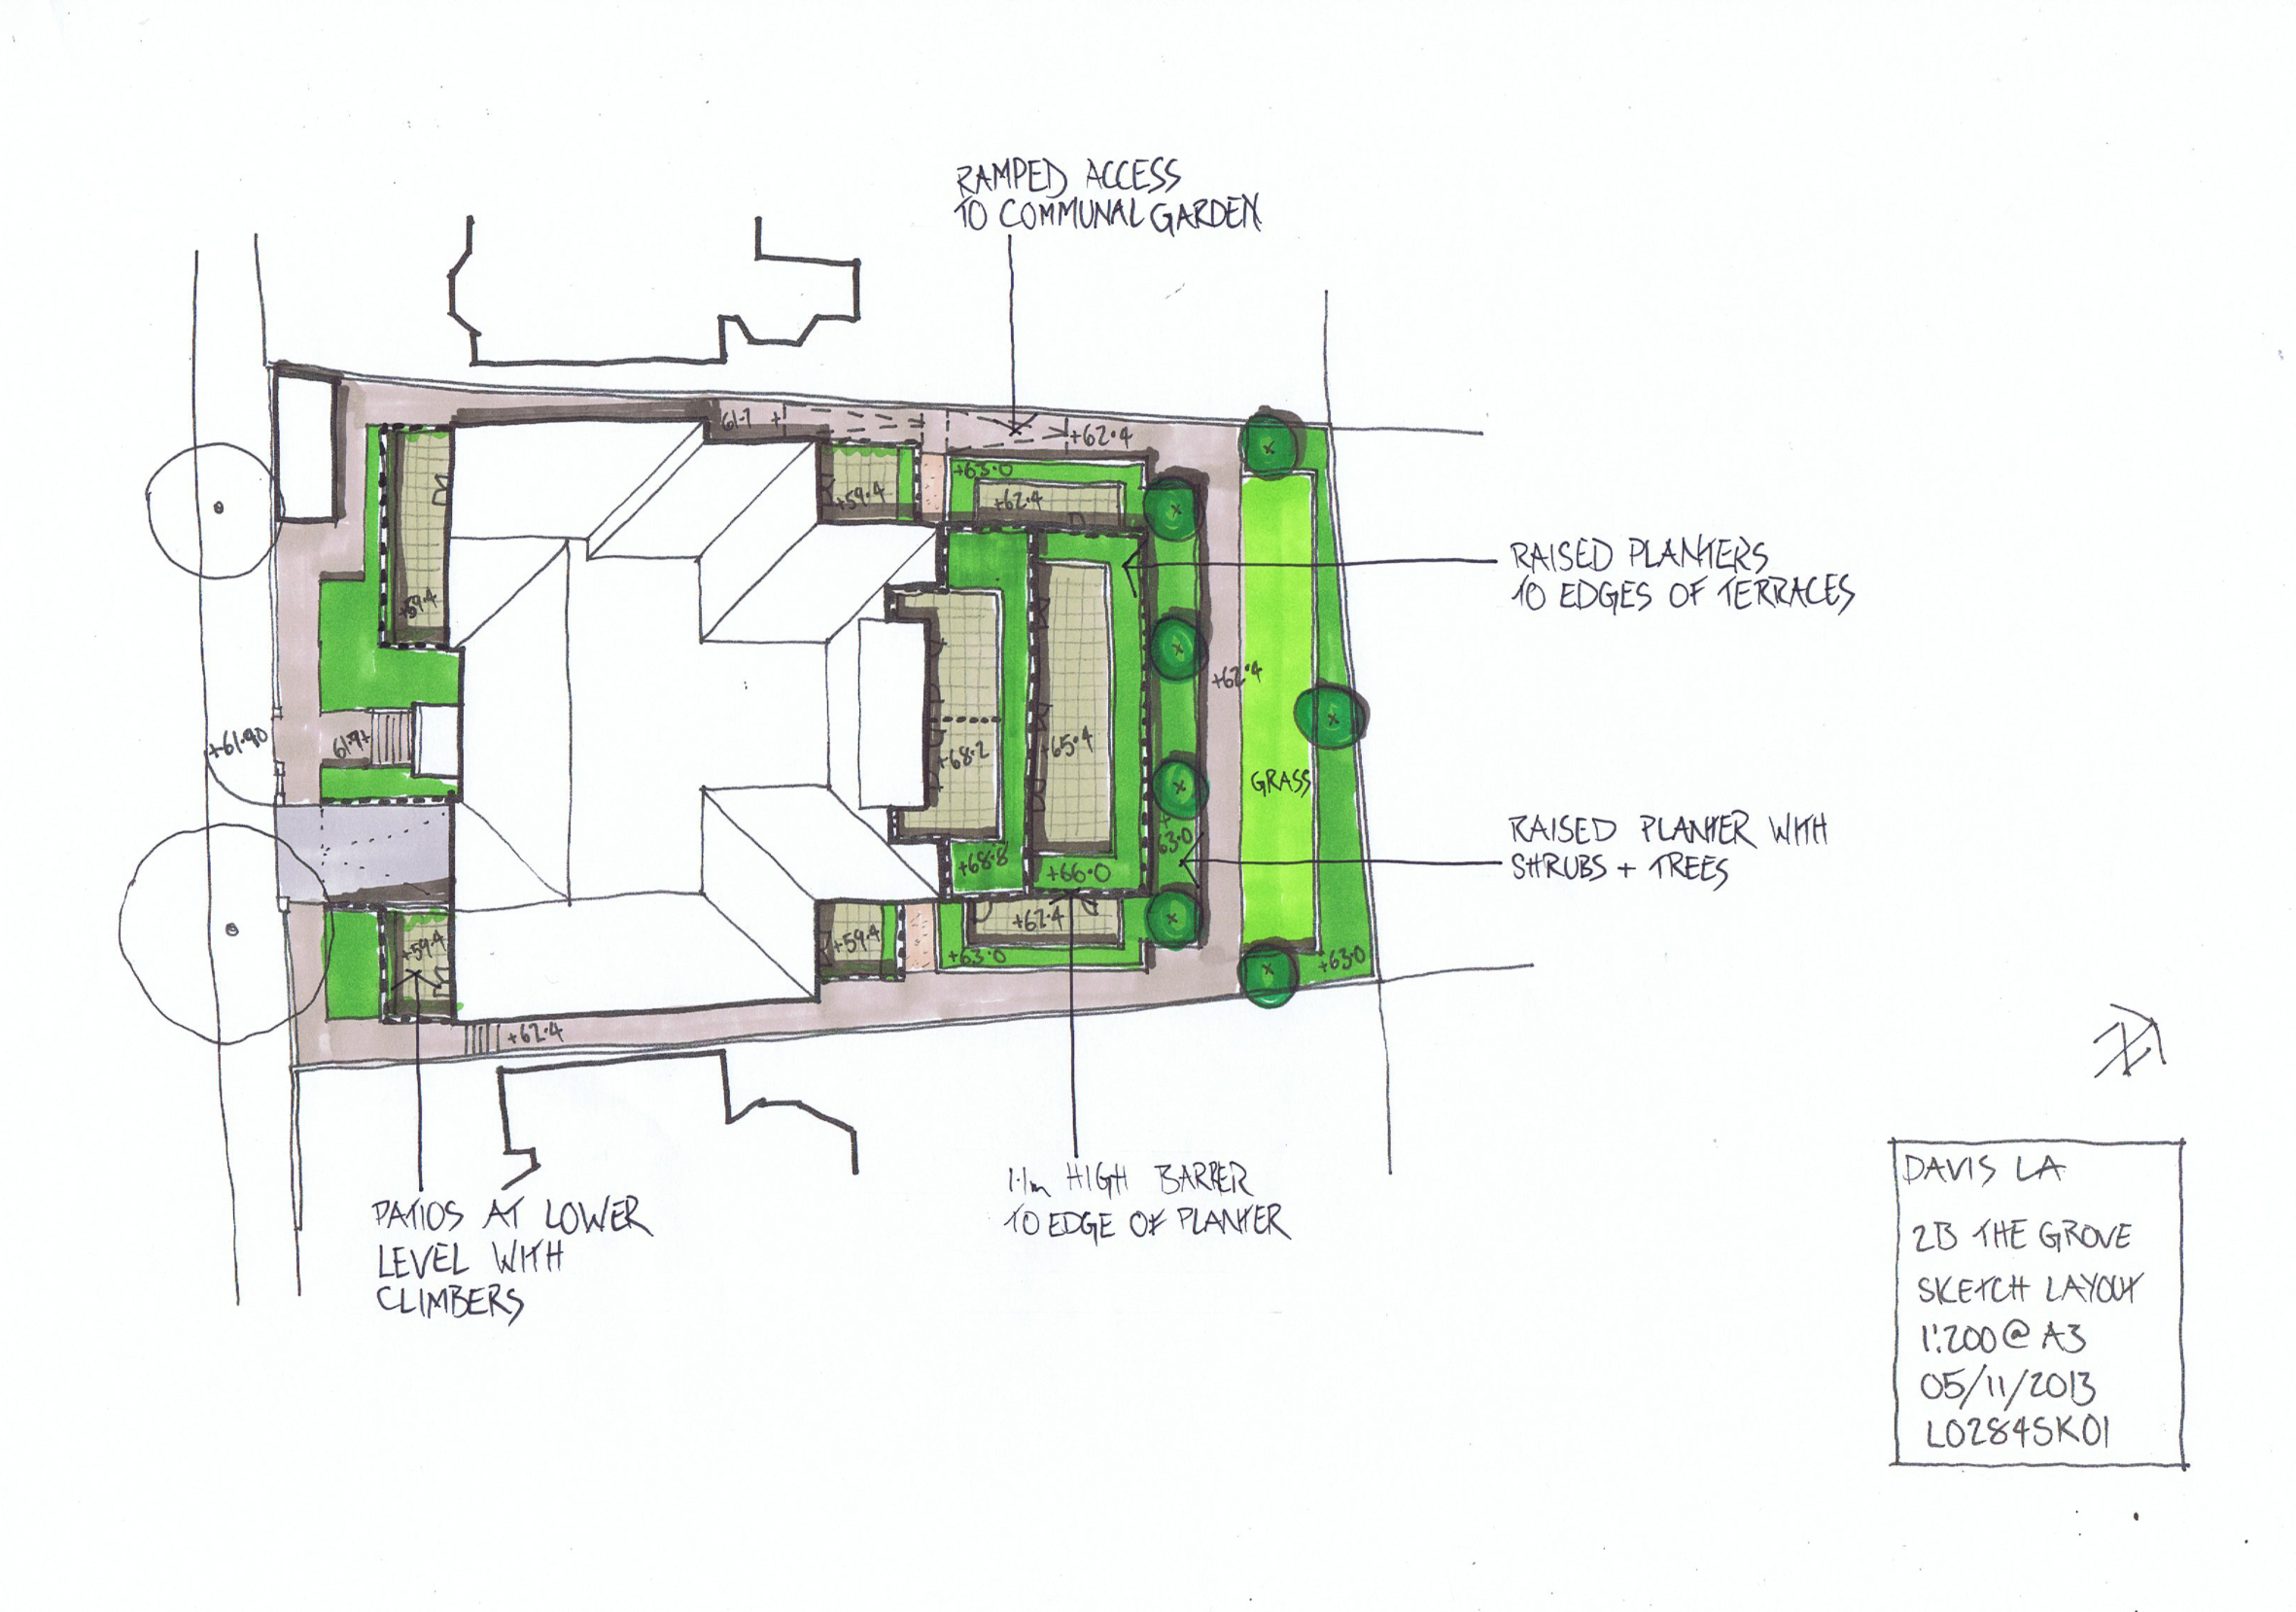 Davis Landscape Architects The Grove London Residential Architect Design Roof Garden Hand Sketch Concept Masterplan